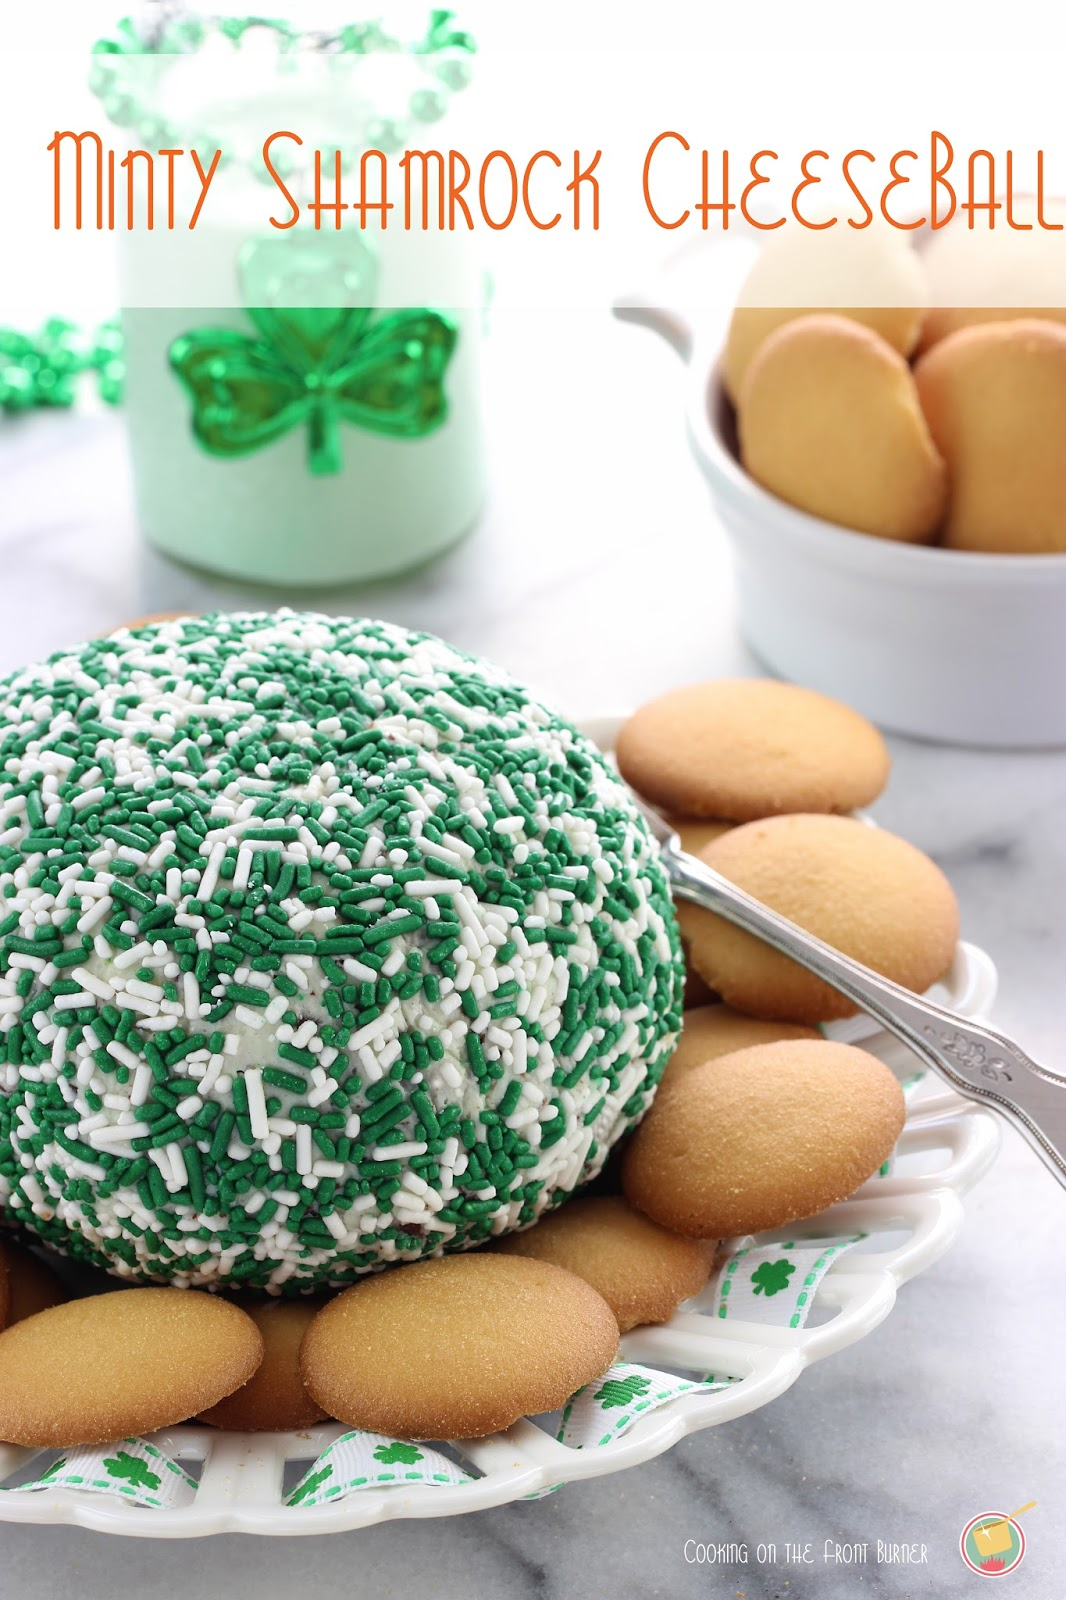 Minty Shamrock Cheeseball | Cooking on the Front Burner